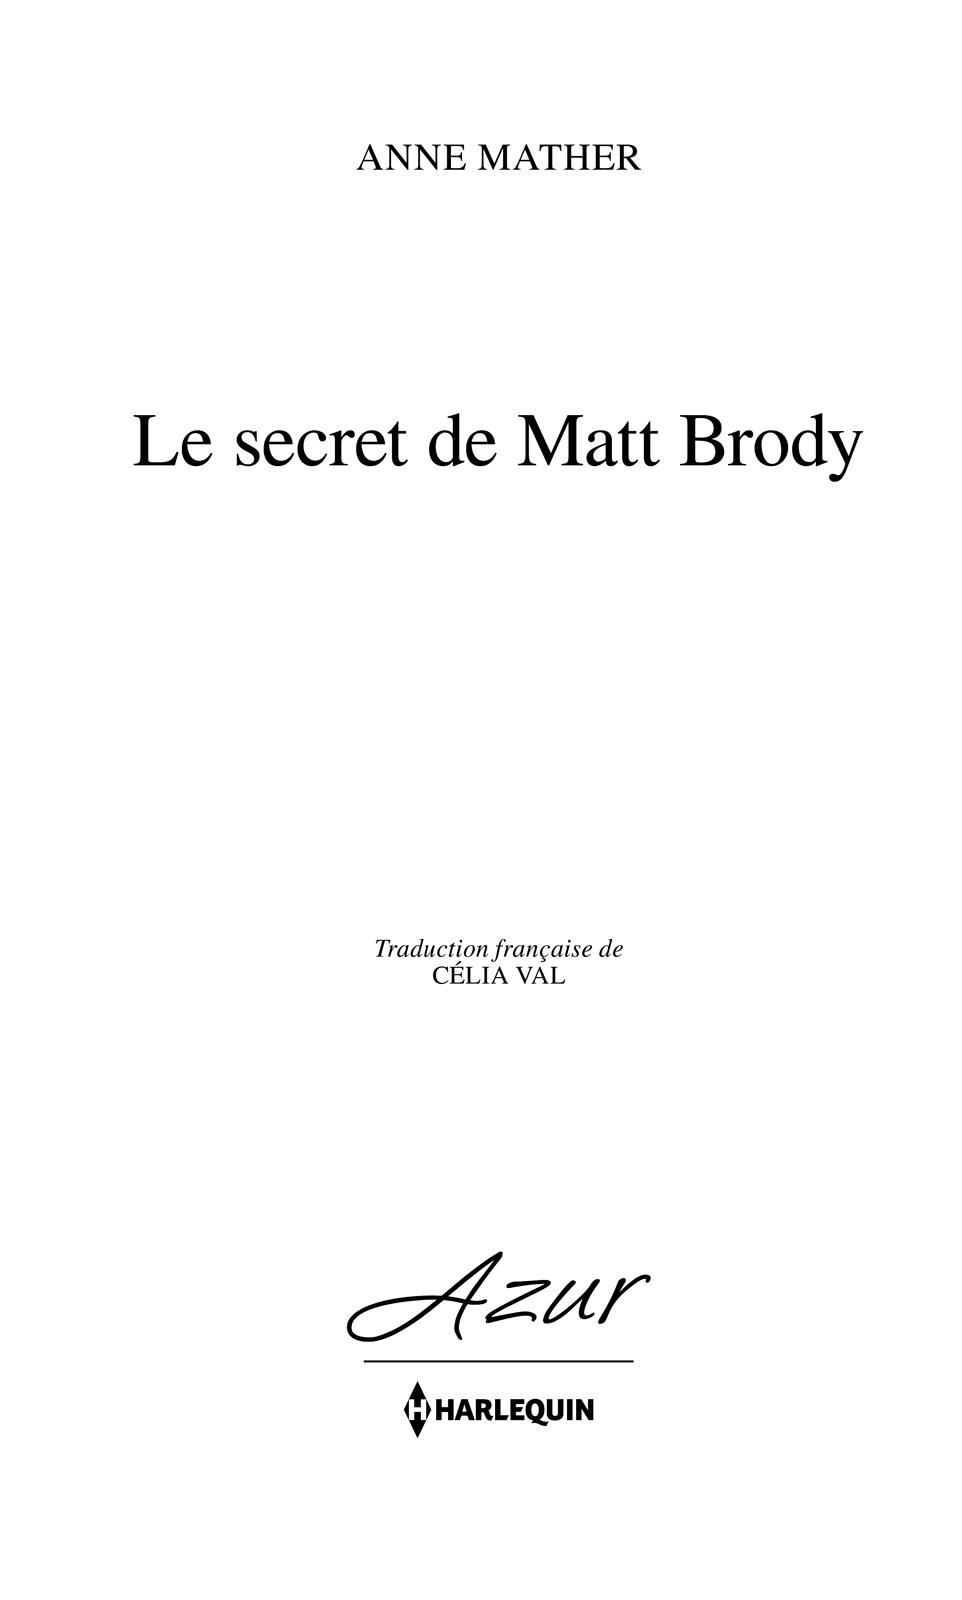 Page de titre : Anne Mather, Le secret de Matt Brody, Harlequin